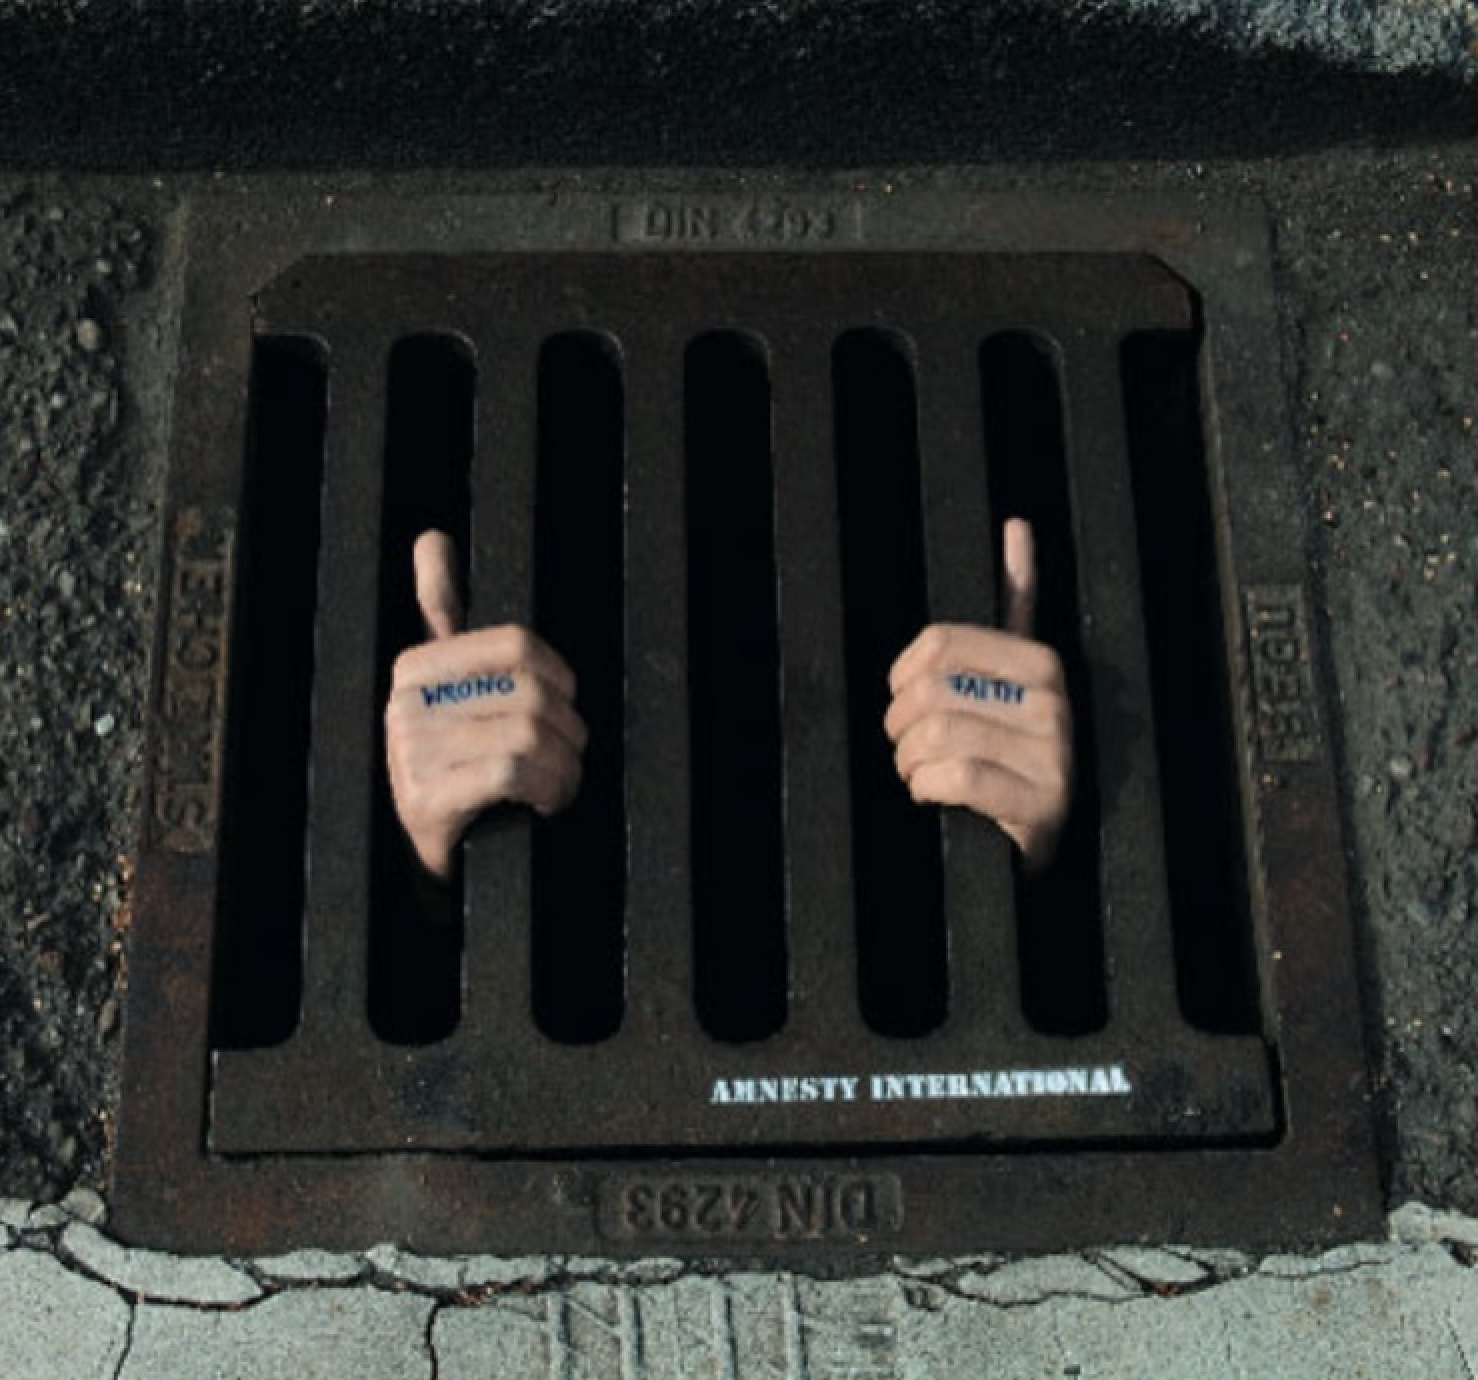 Guerrilla Marketing - Amnesty International